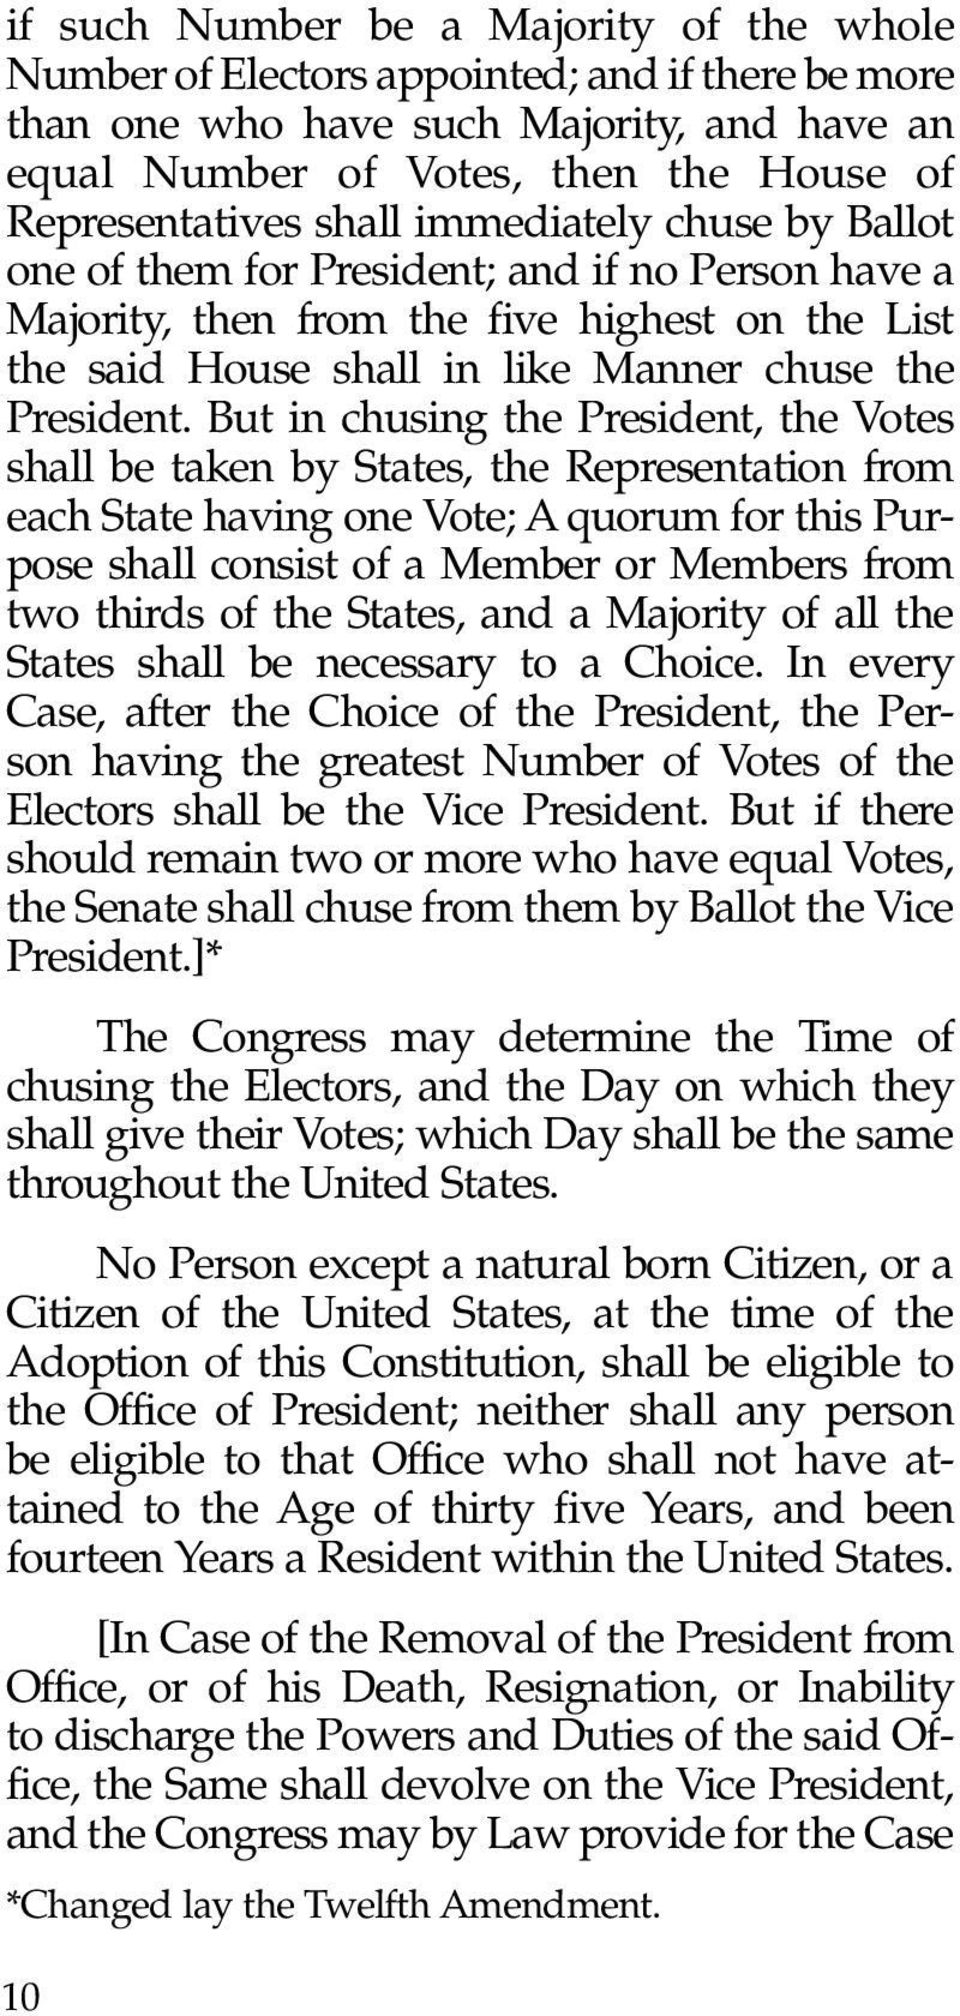 But in chusing the President, the Votes shall be taken by States, the Representation from each State having one Vote; A quorum for this Purpose shall consist of a Member or Members from two thirds of